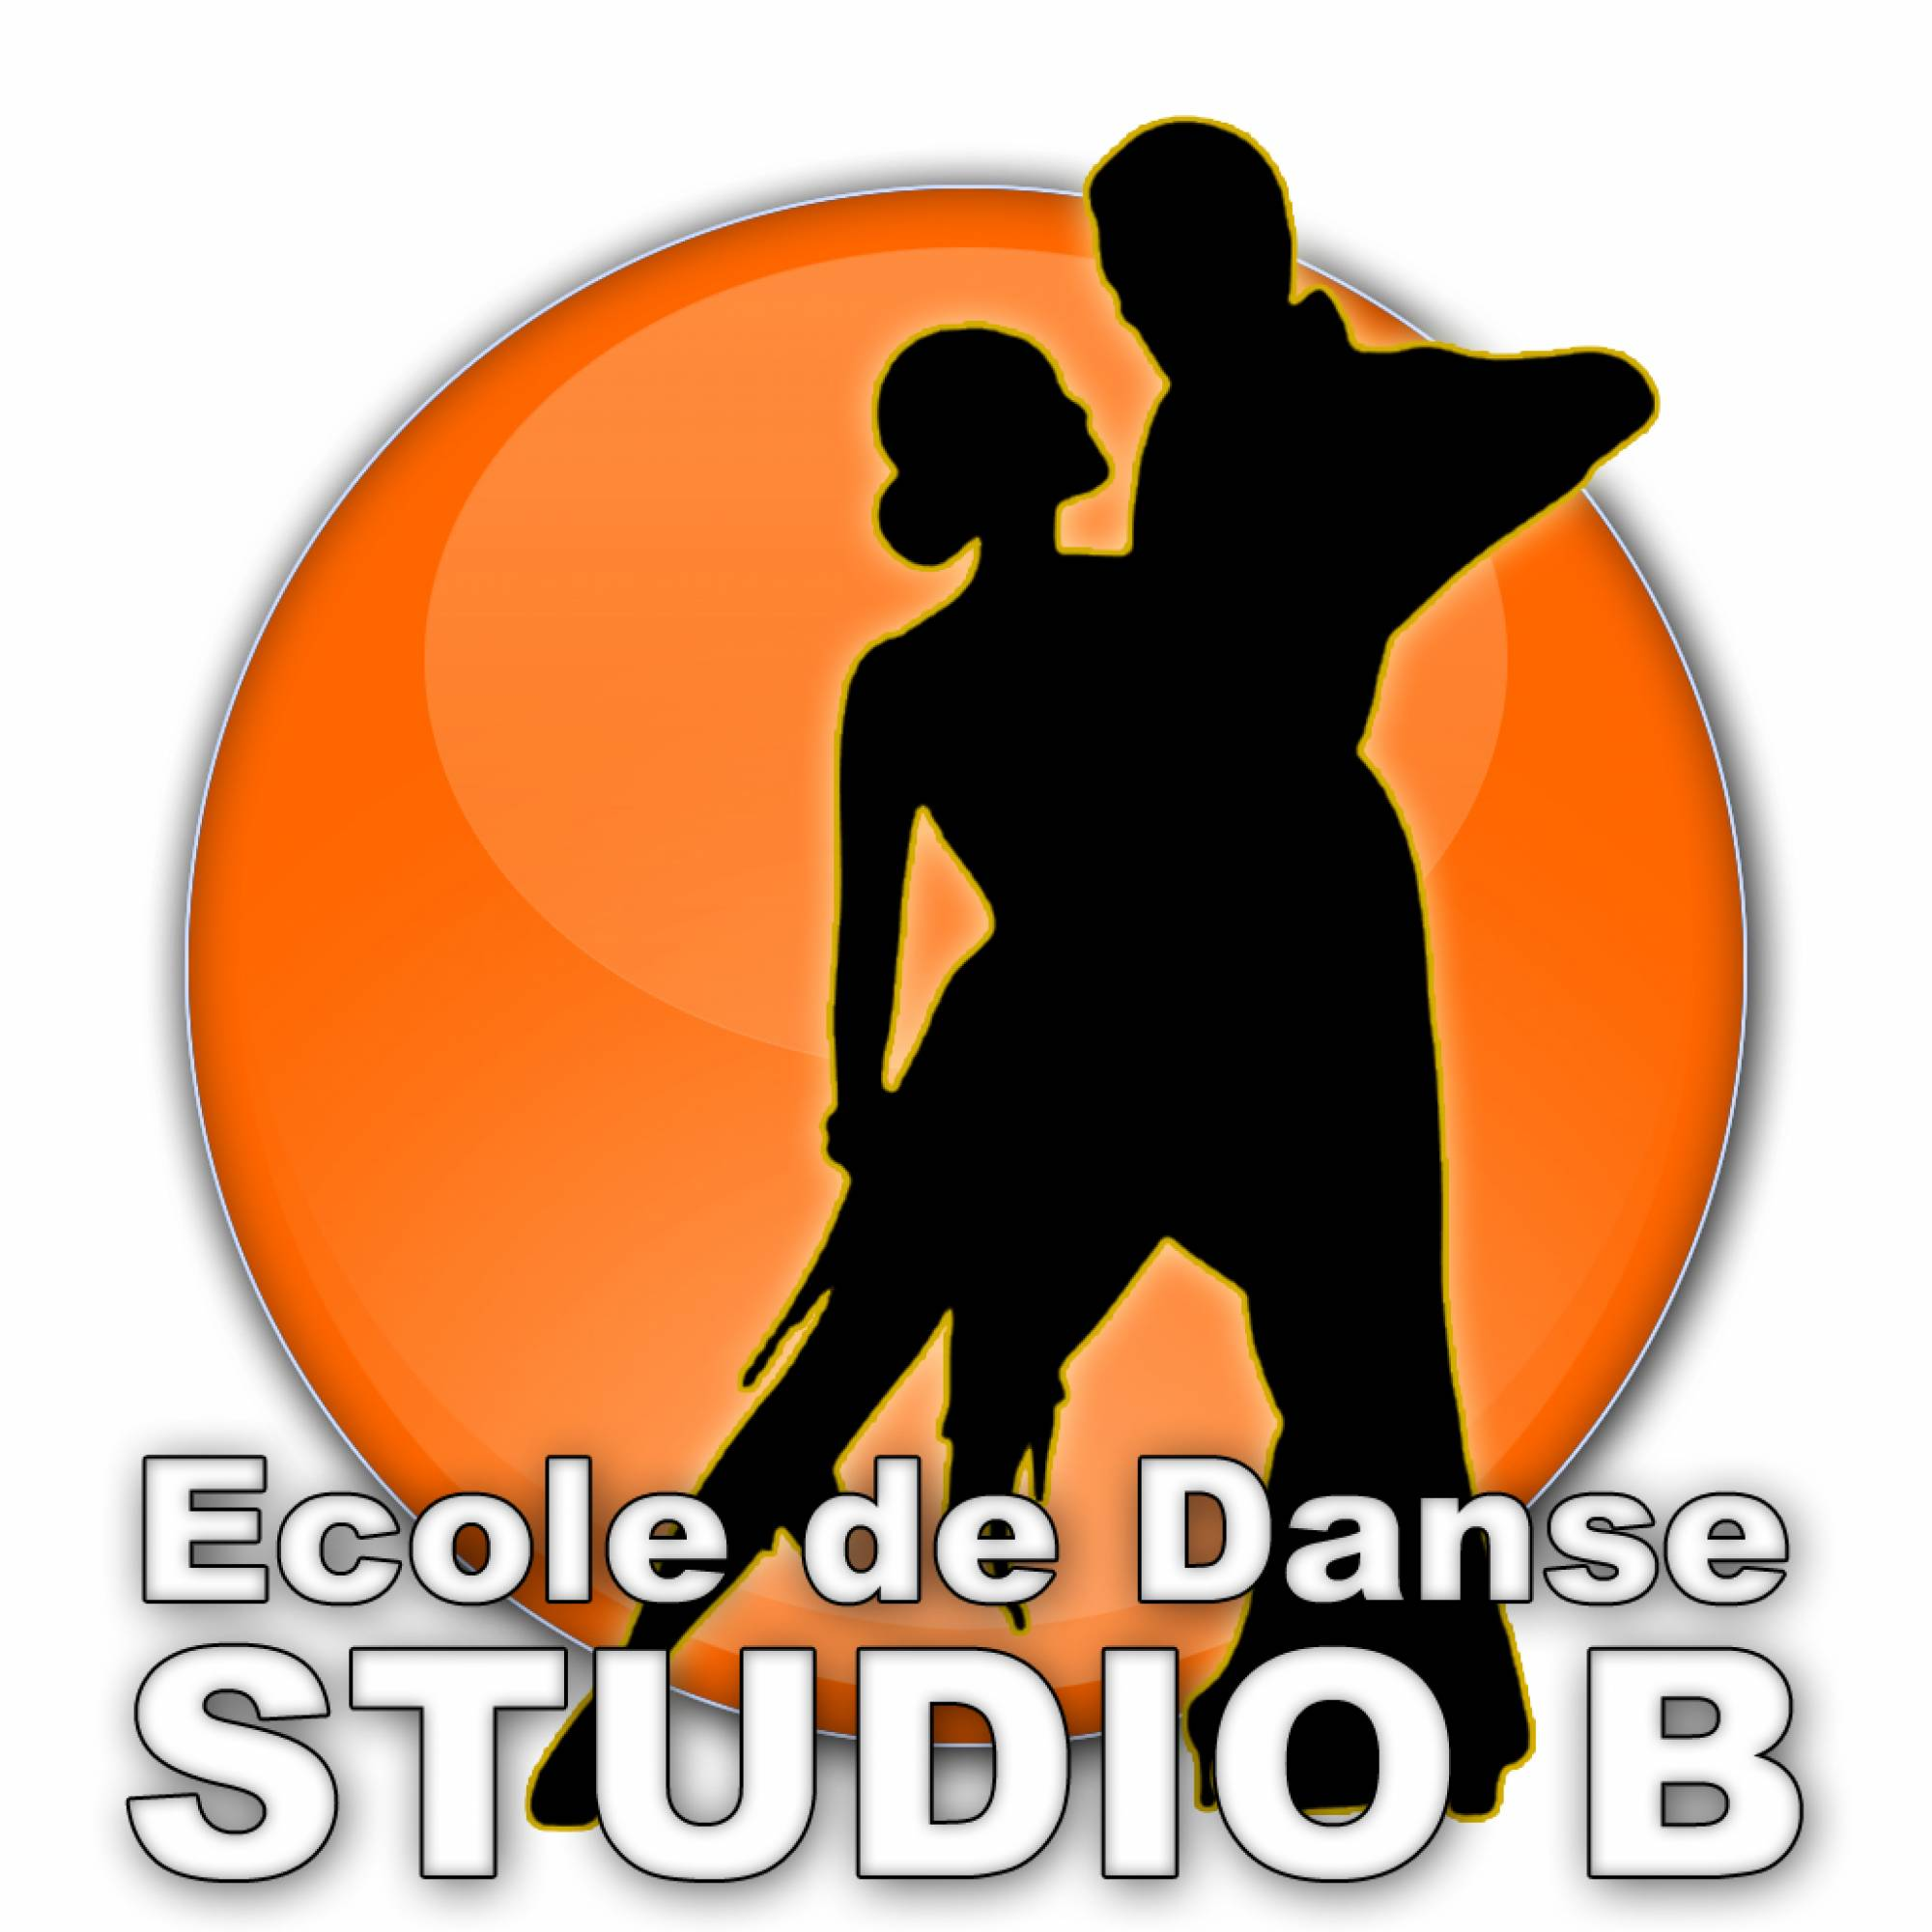 Ecole de danse de salon marseille marsreille studio b for Cours de danse de salon 92